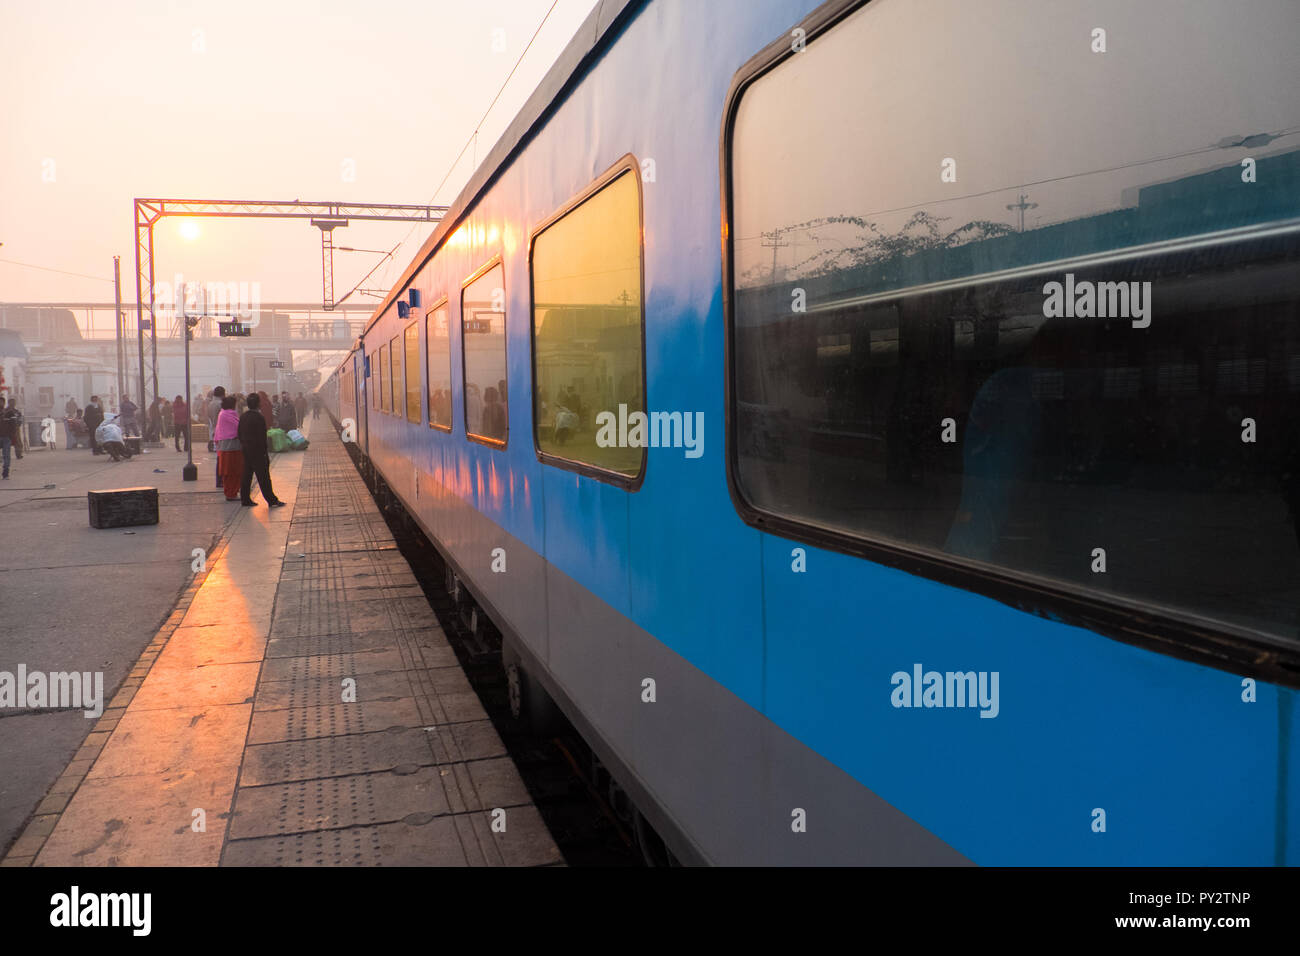 Indian railway station at dawn with Delhi-bound train at platform Stock Photo